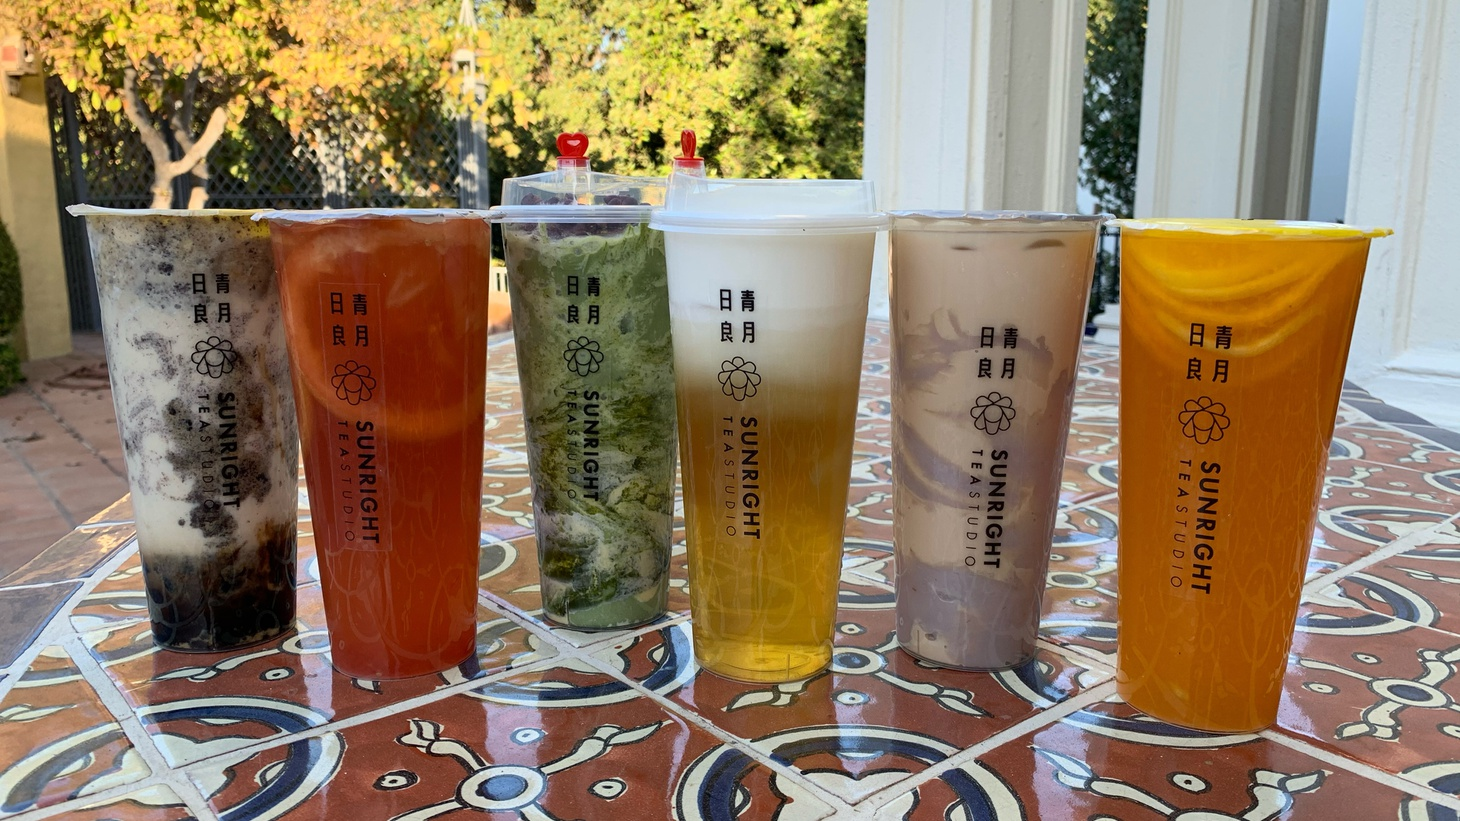 Boba came to the U.S. via Taiwan in the mid-1990s, and has since sprouted shops throughout the San Gabriel Valley. Kristie Hang has a rundown of a few favorites.